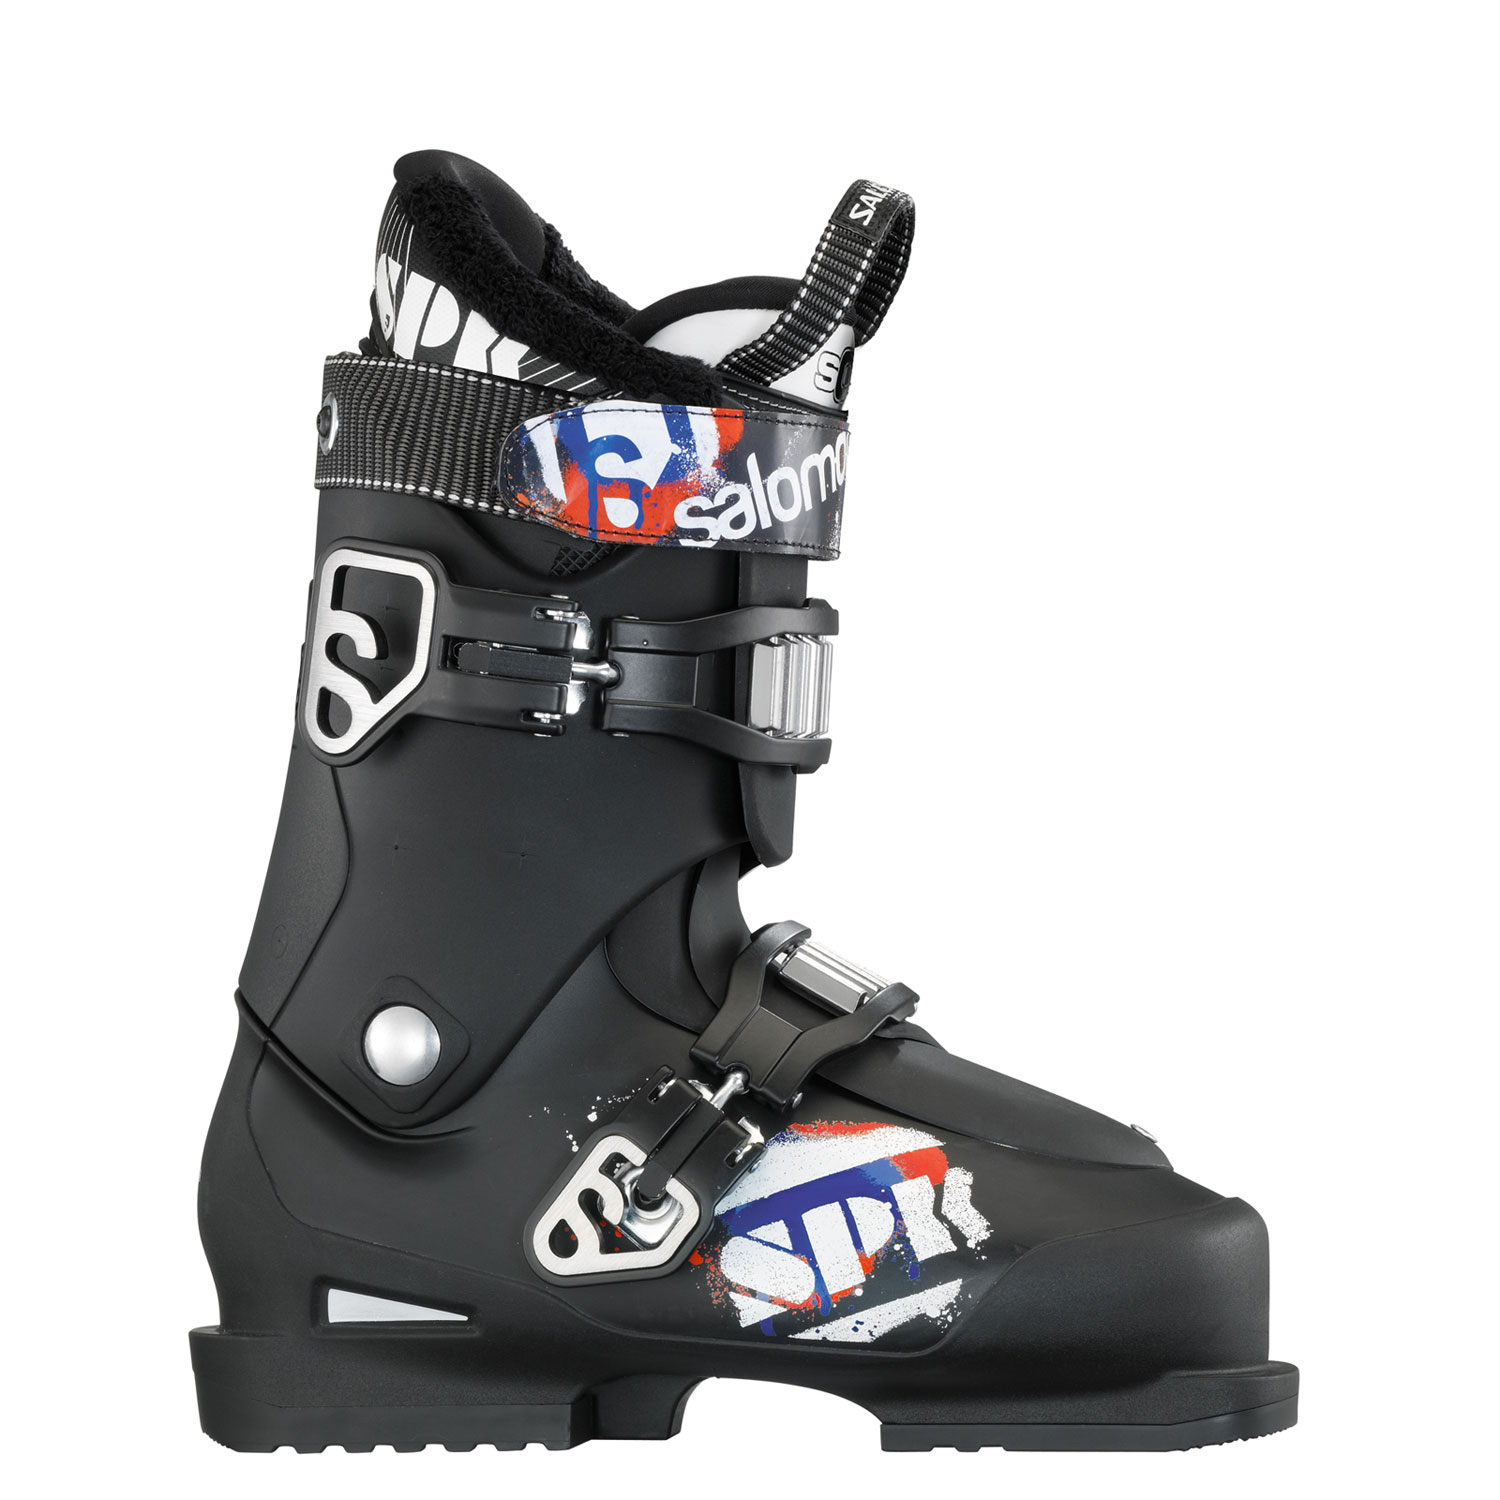 Ski Key Features of the Salomon Spk 75 Ski Boots: Bi-Material Pp Lower Shell Bi-Material Pp Upper Cuff Heel Cushioning System Thermicfit Loop On Tongue Heel And Toe Removable Din Pads - $209.95